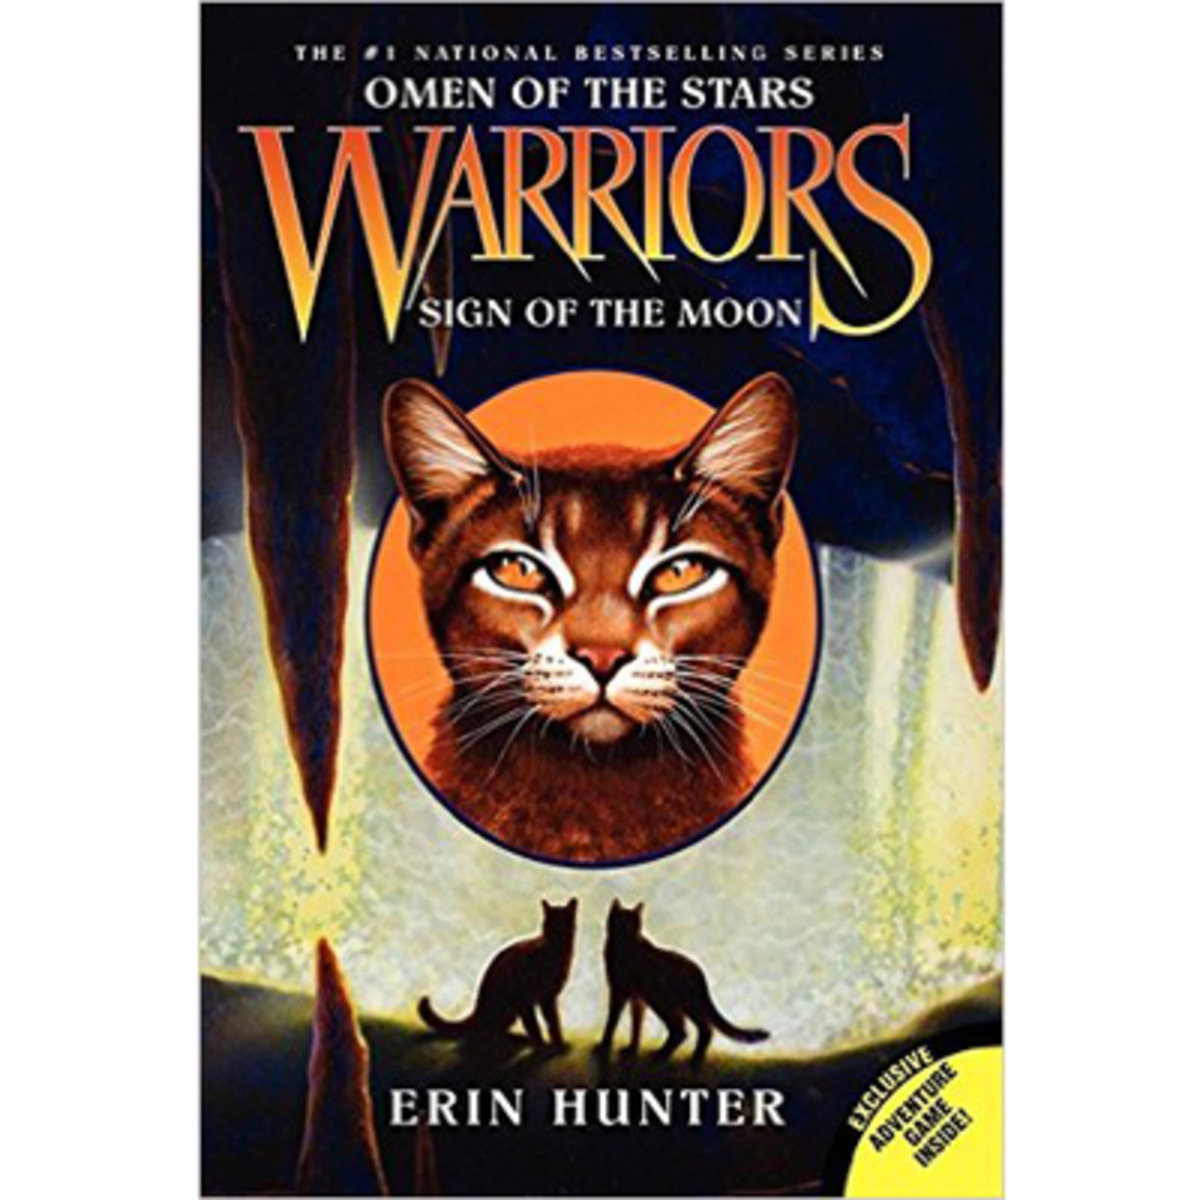 WARRIORS: SIGN OF THE MOON 9780061555213